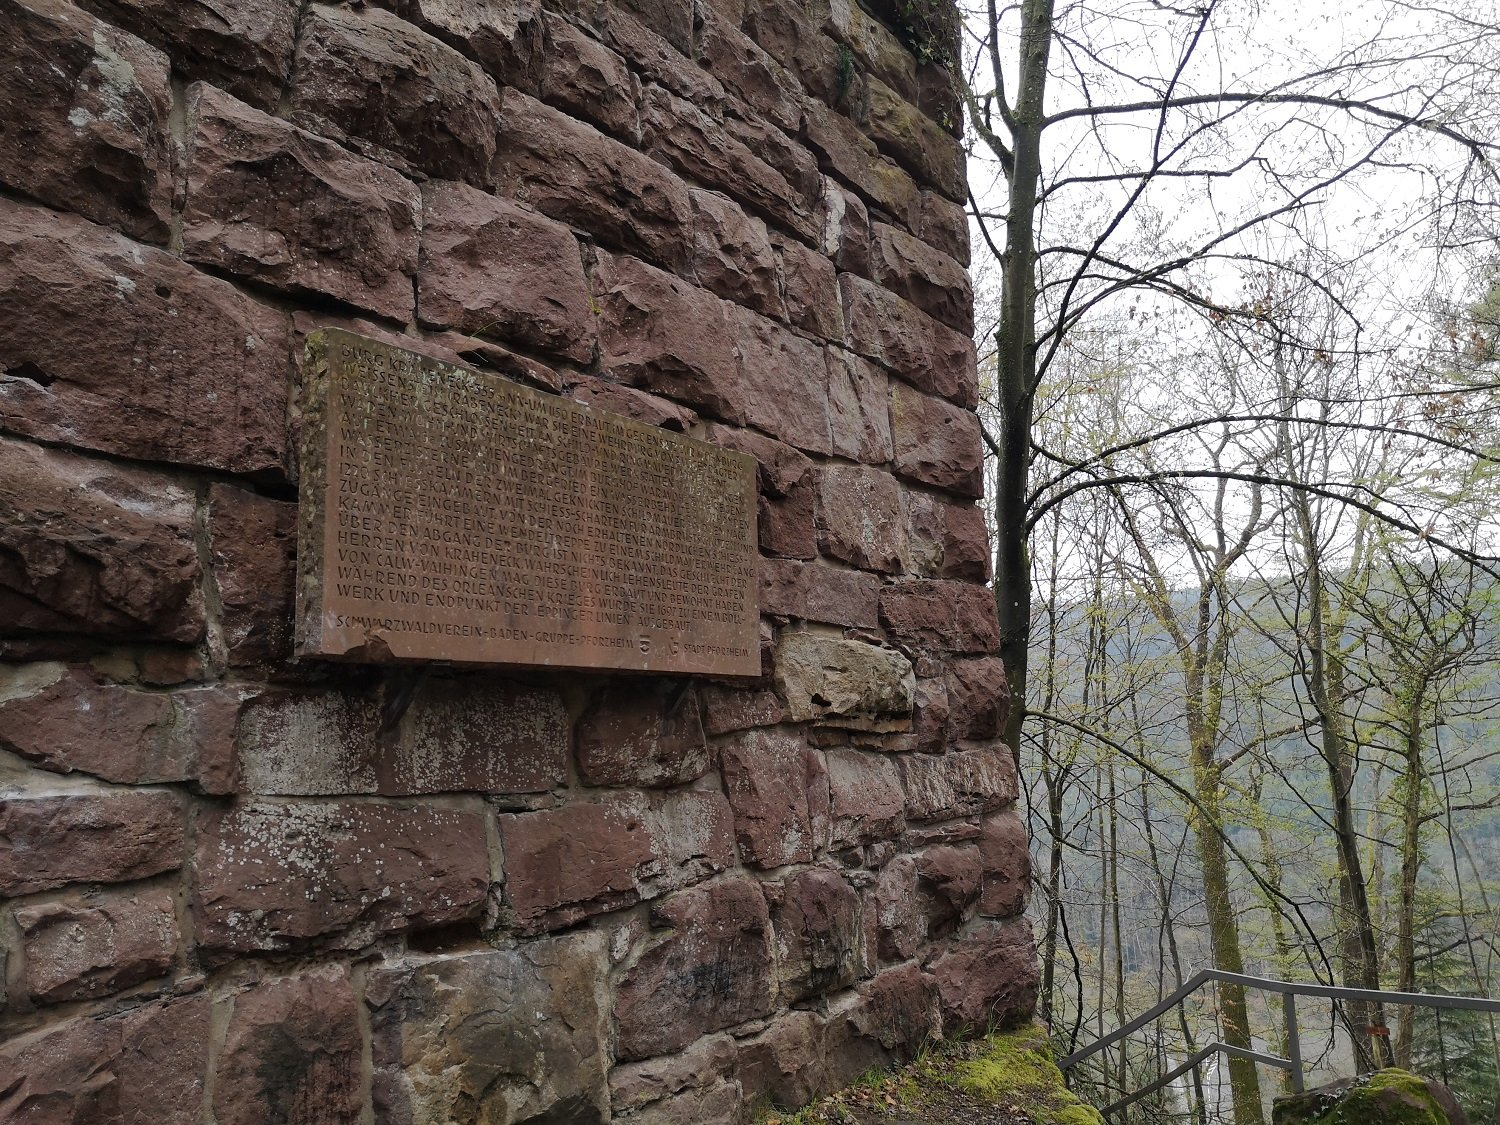 A stone tablet on the wall of the ruin